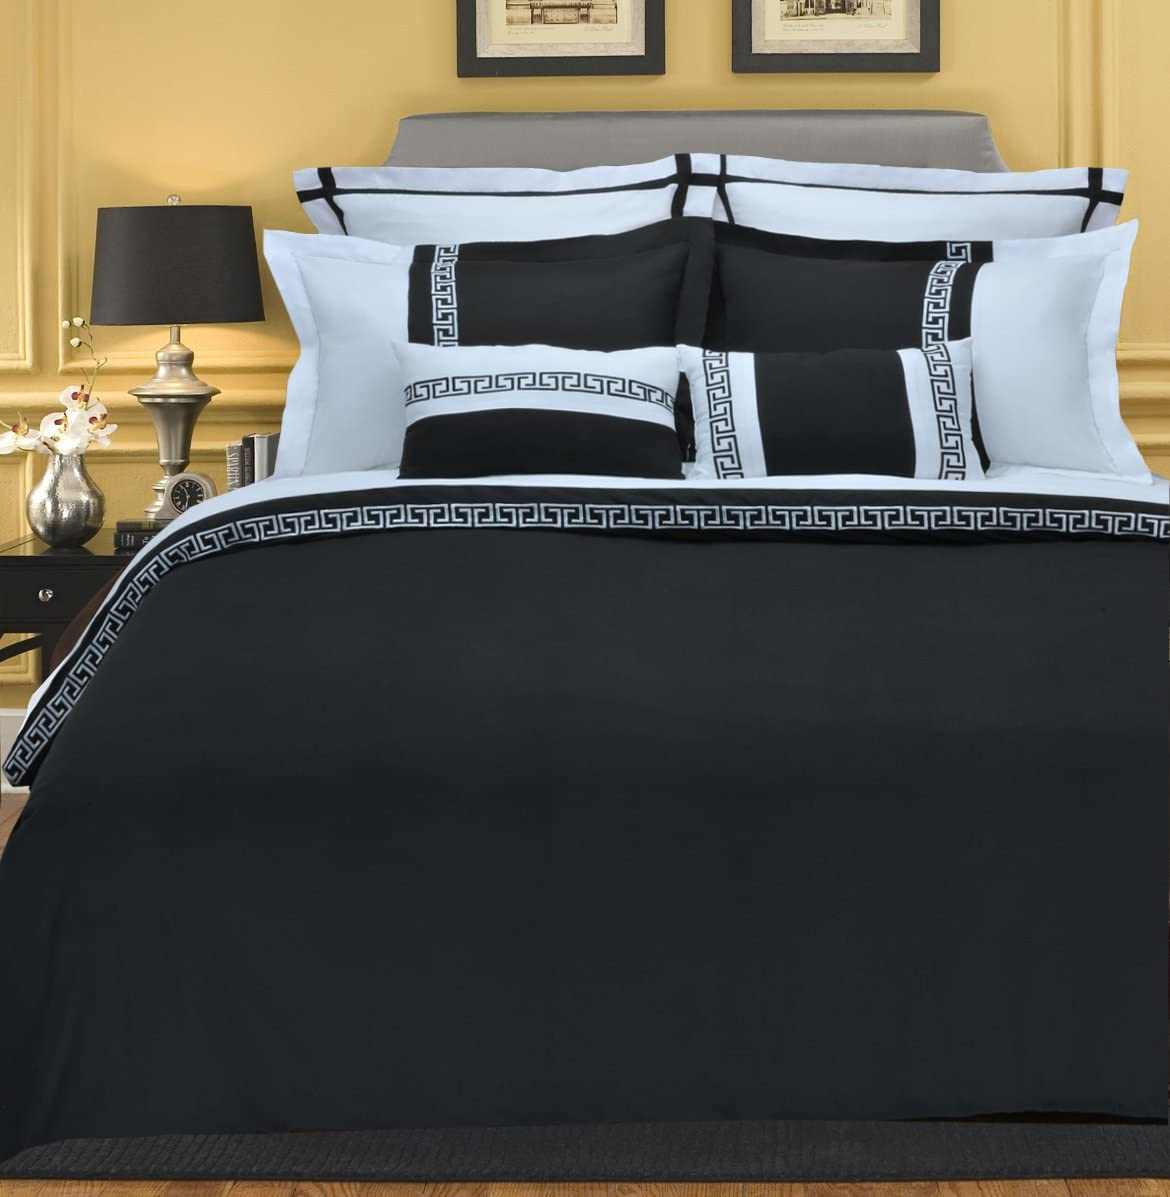 3-Piece Emma Wrinkle Resistant Duvet Cover Blac Full Oklahoma City Mall At the price Set Queen